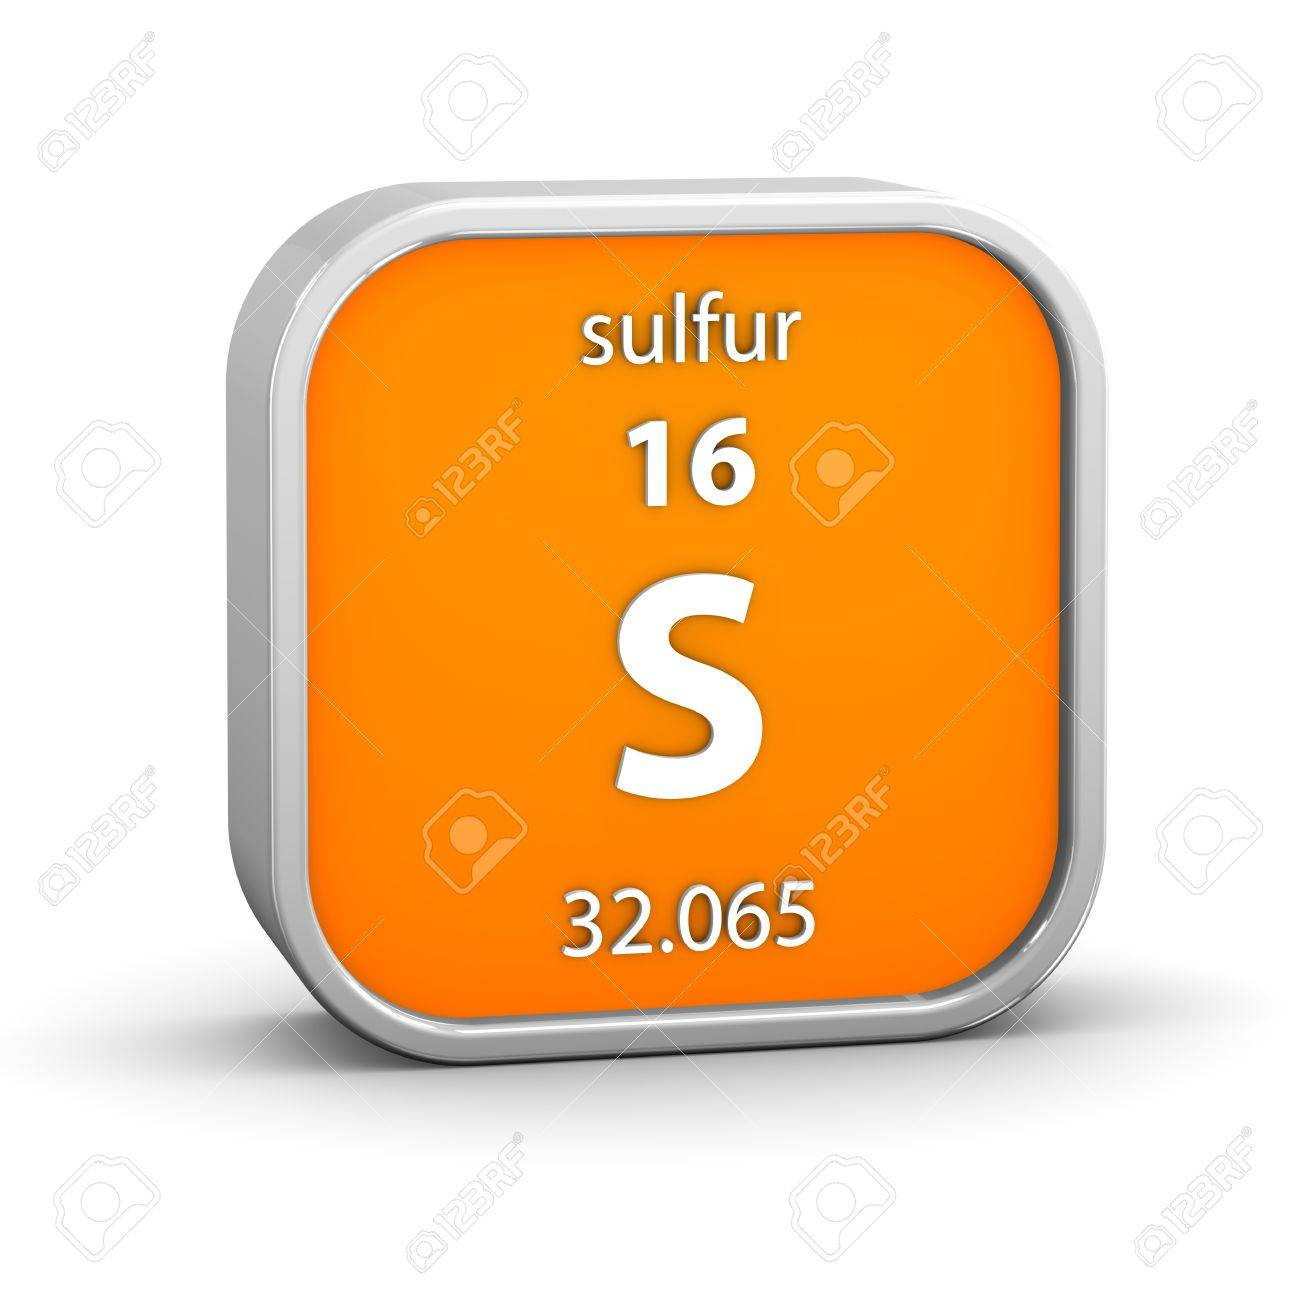 Mn symbol periodic table choice image periodic table images sulphur symbol periodic table choice image periodic table images sulfur symbol periodic table more information uk gamestrikefo Image collections